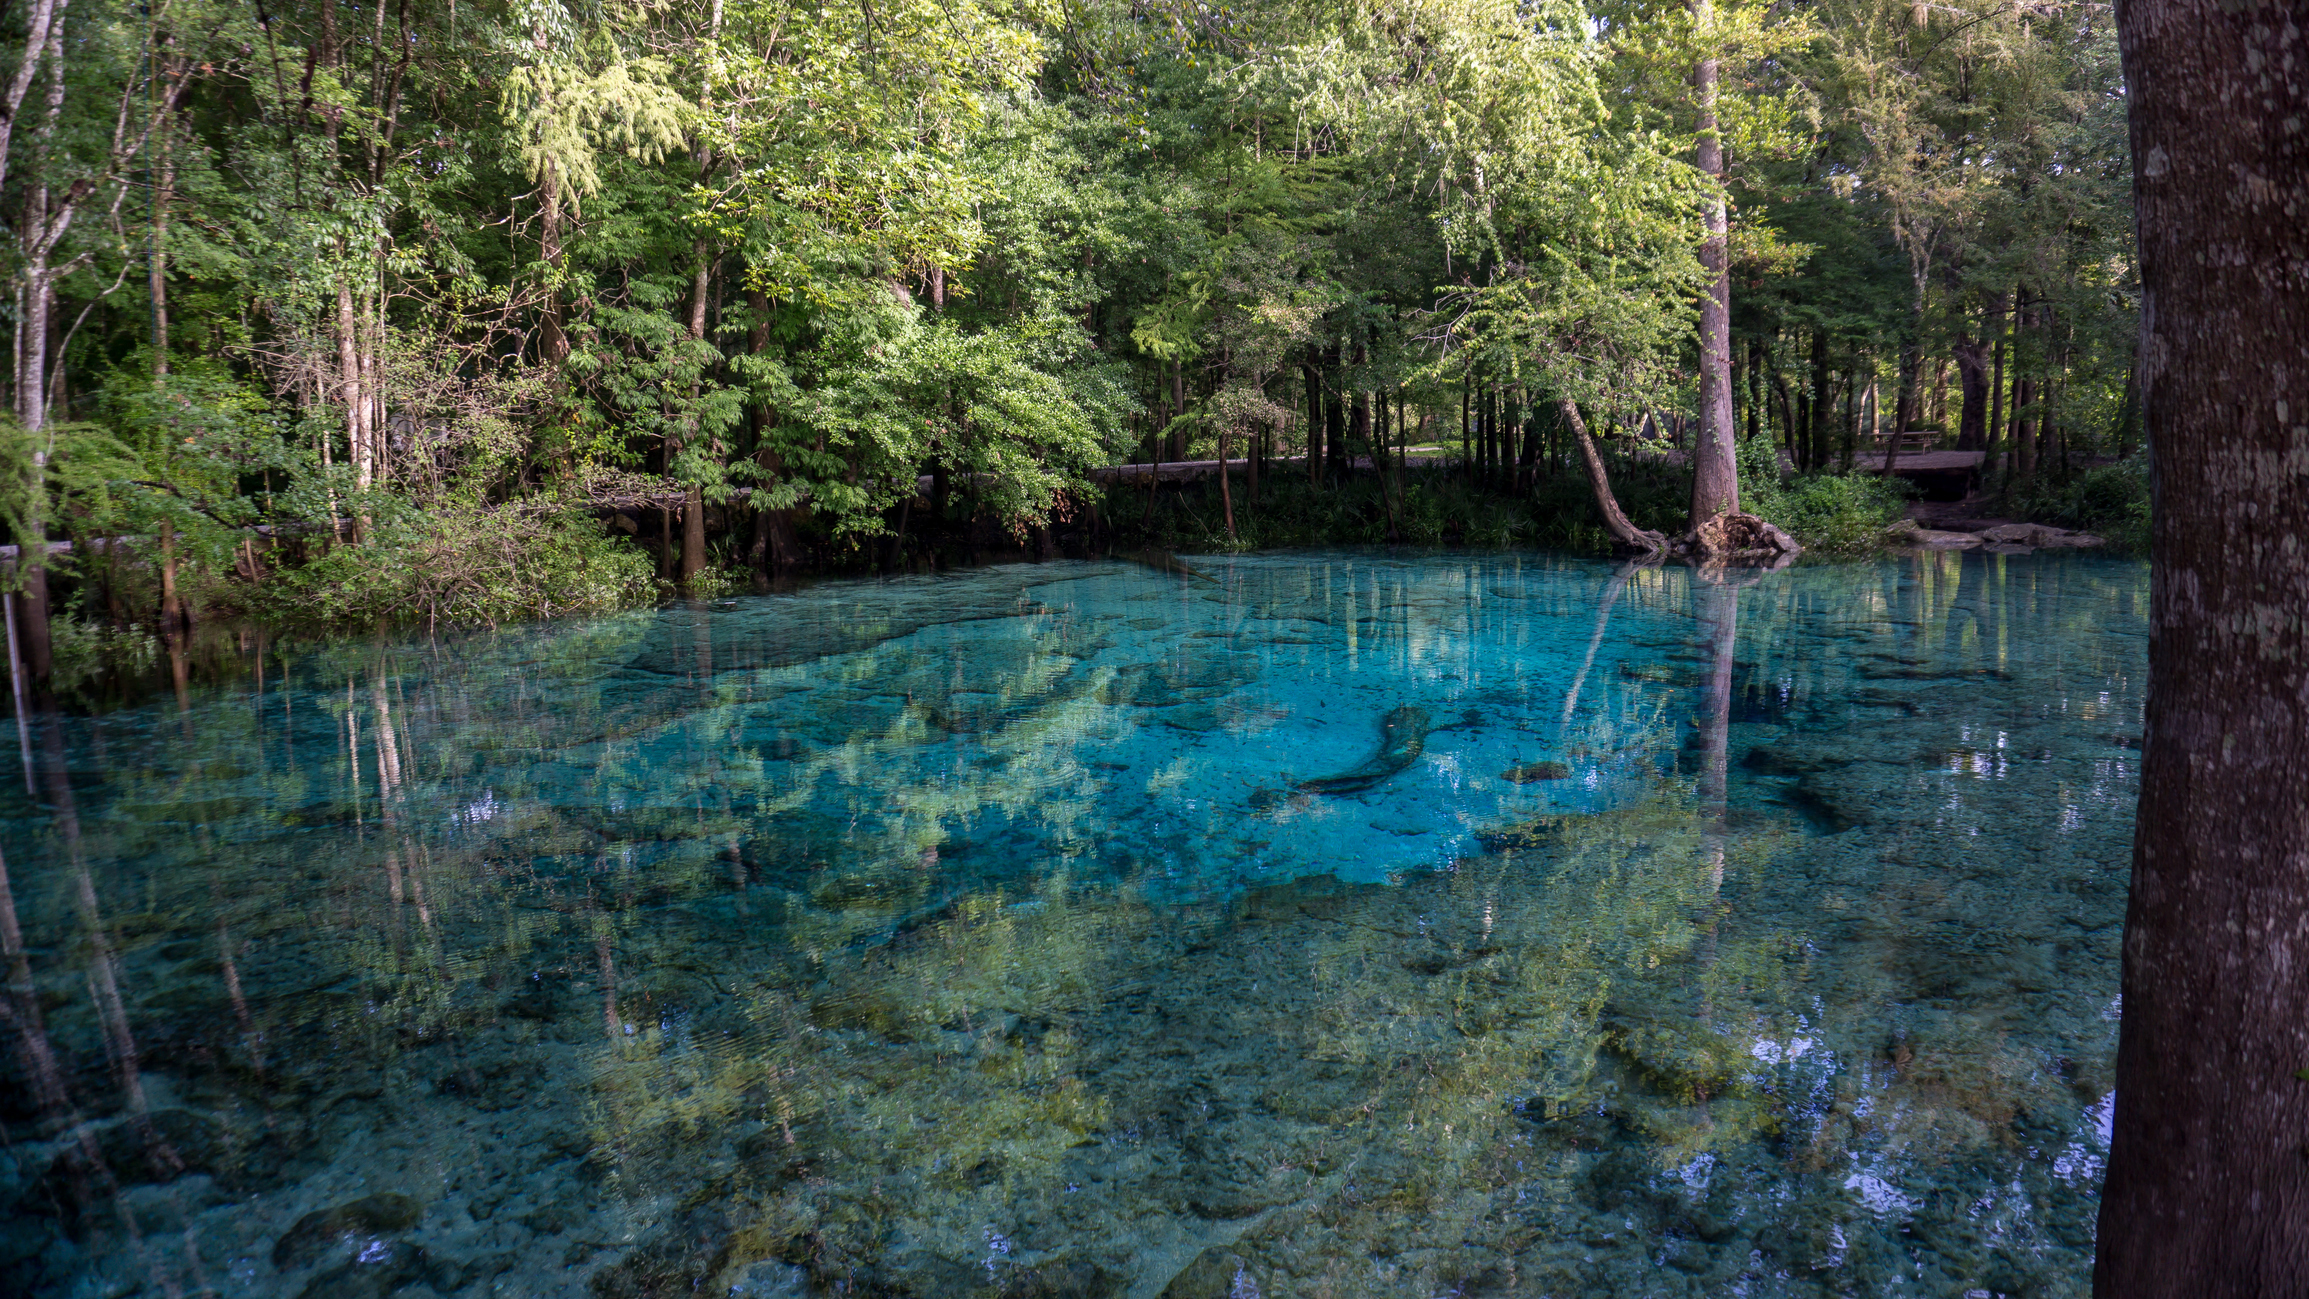 If you're looking to take in more nature, discover  Radium Springs . The largest spring in the state and one of Georgia's seven natural wonders is a sight for sore eyes.